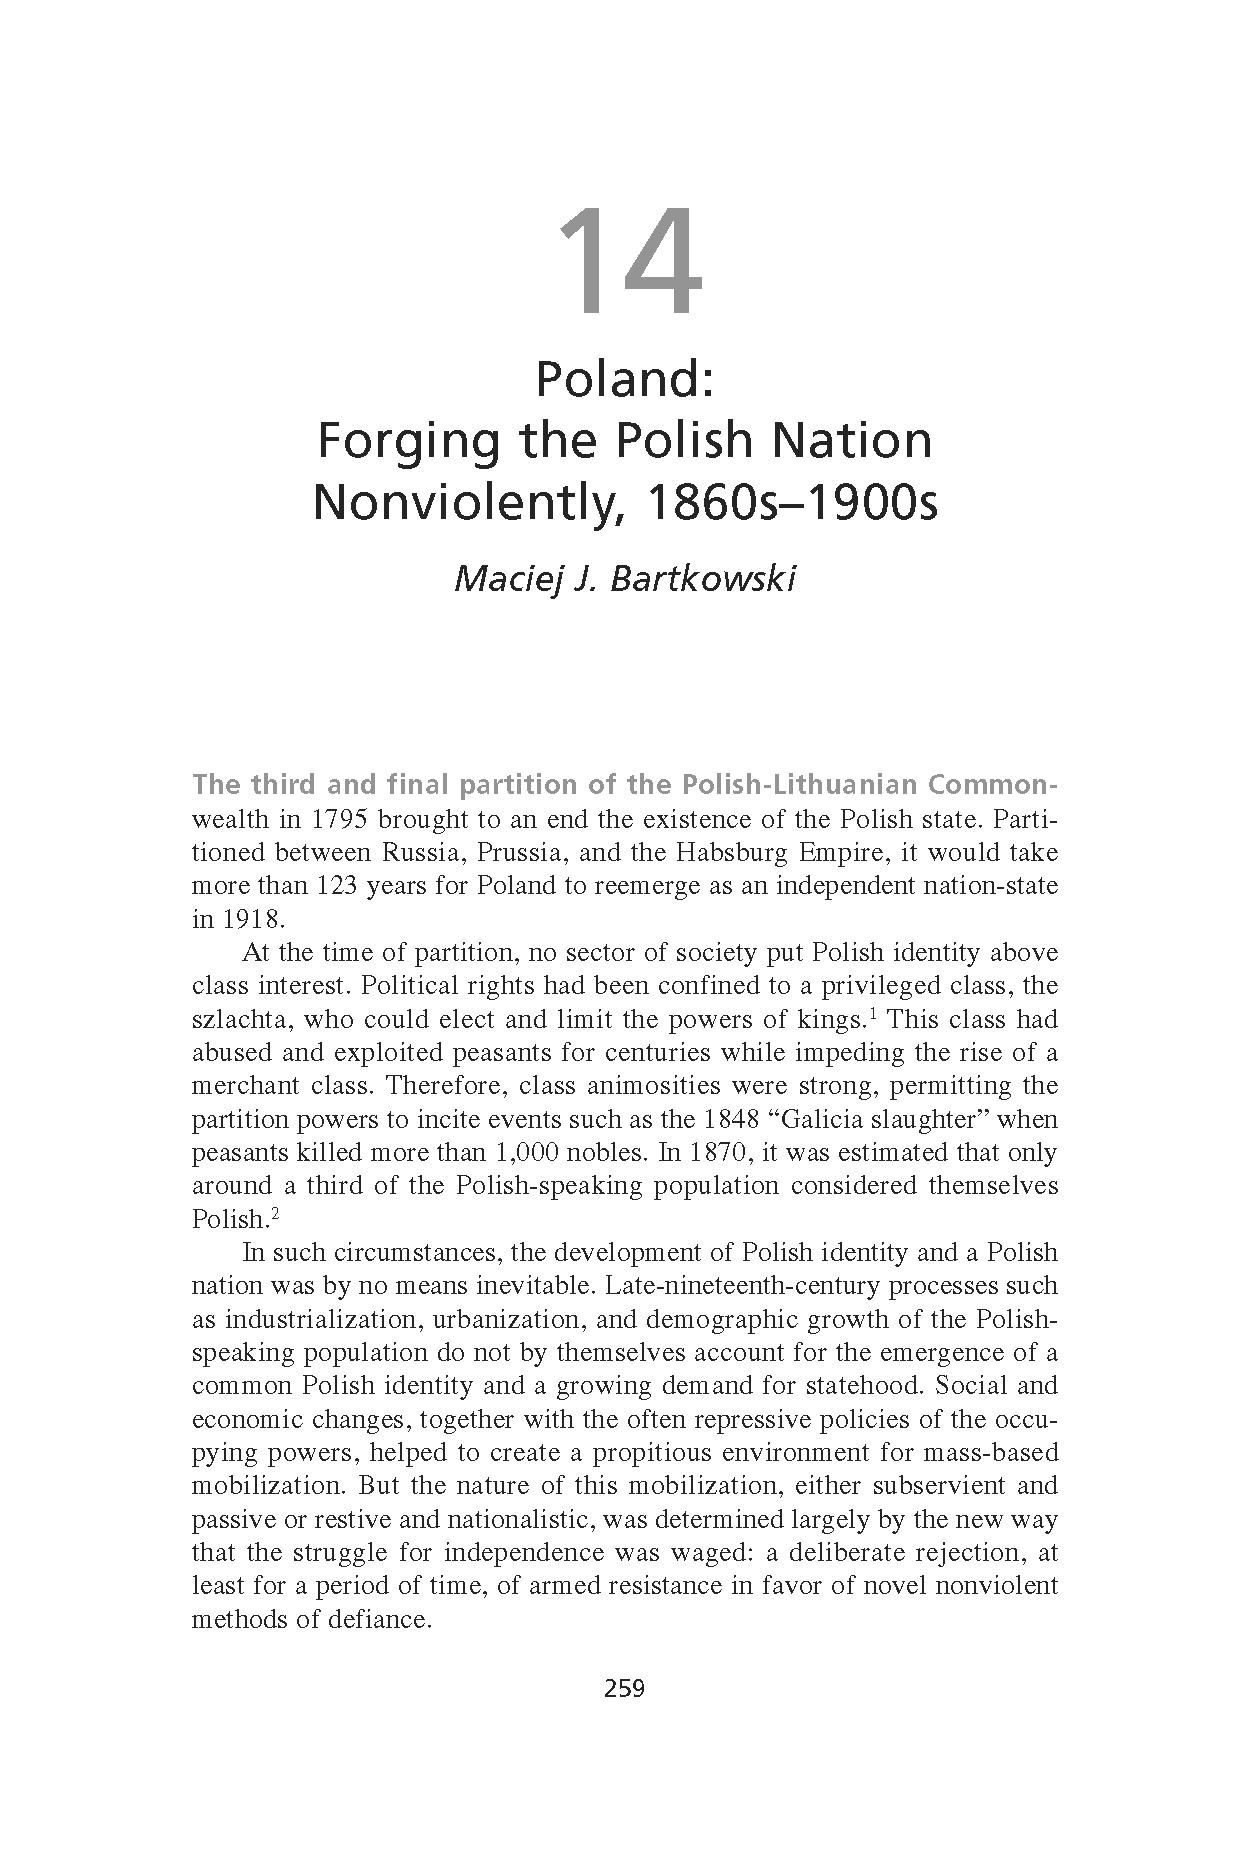 Poland: Forging the Polish Nation Nonviolently, 1860s-1900s (Chapter 14 from 'Recovering Nonviolent History')